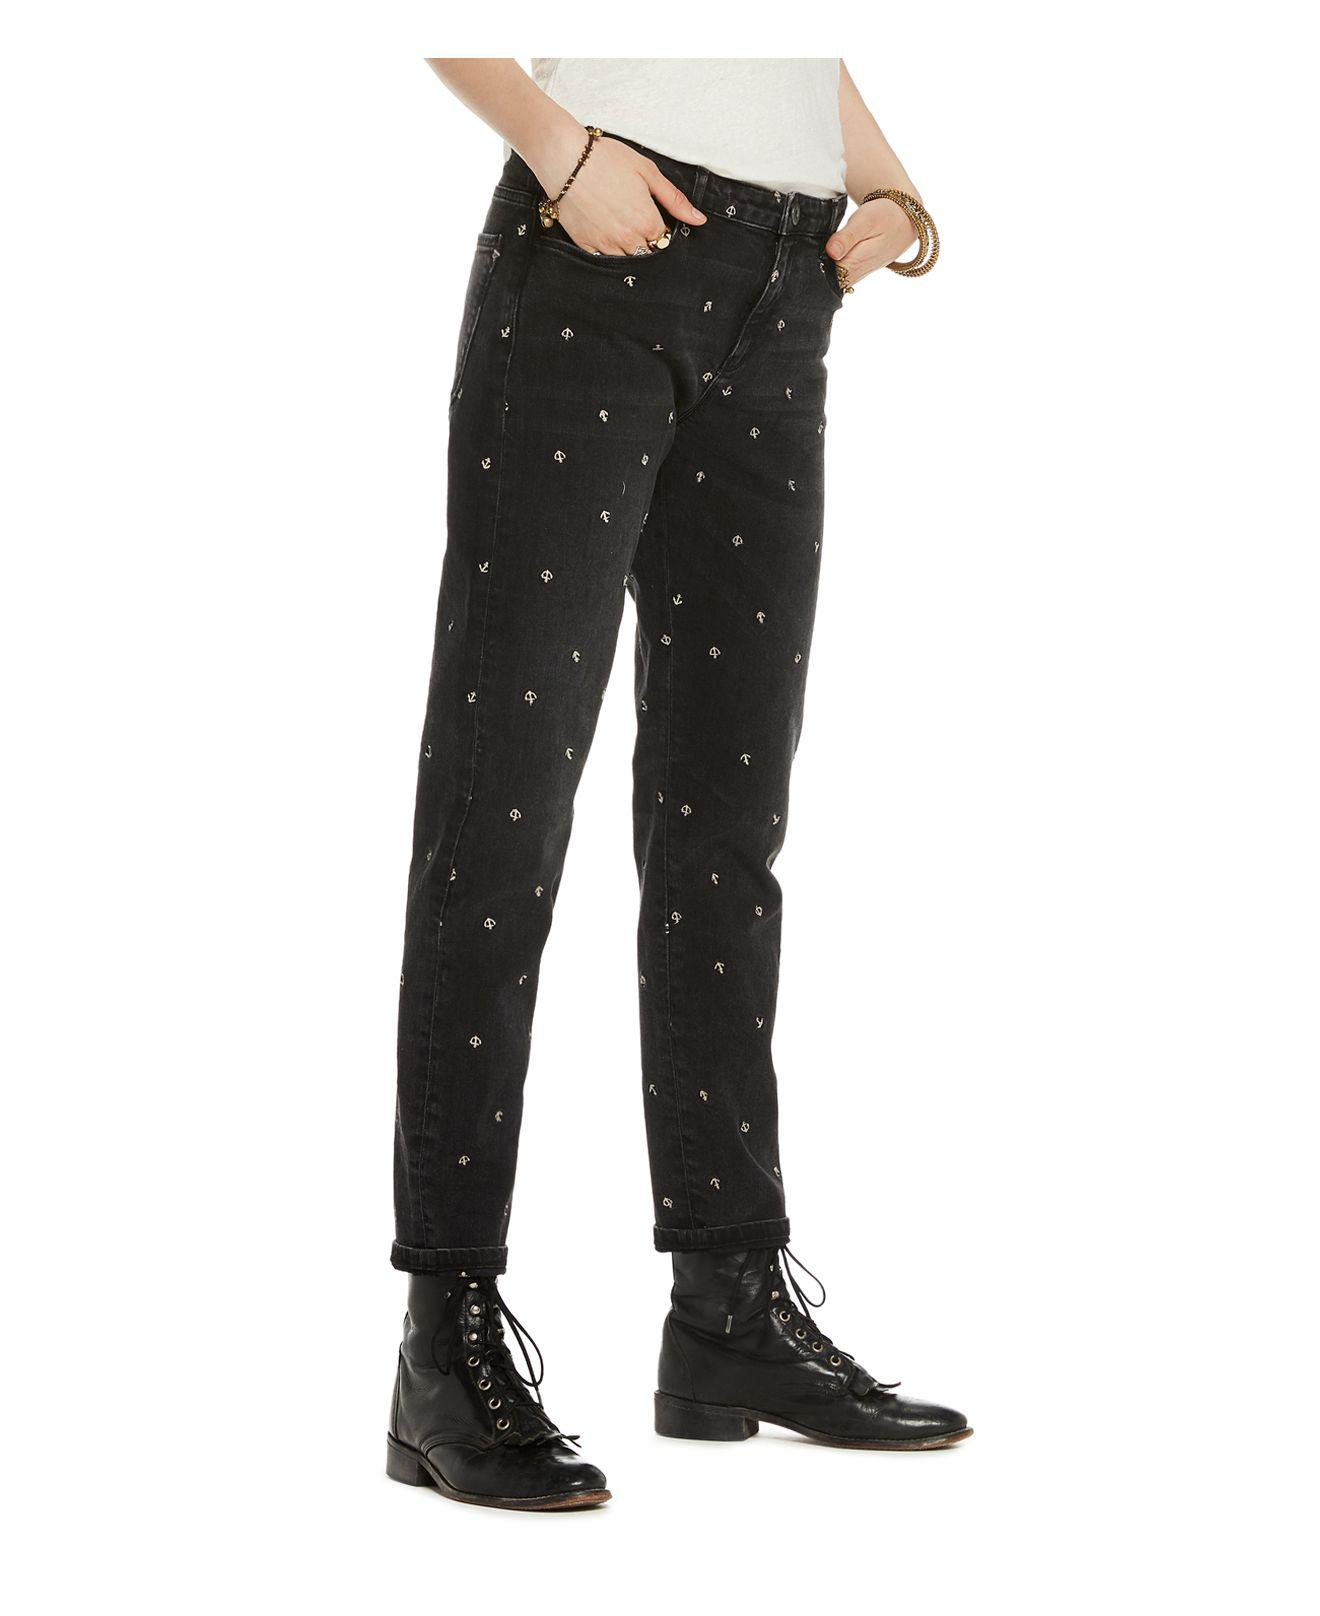 Womens Petit Ami-Indigo Heart Jeans Scotch & Soda Pay With Visa Sale Online Clearance Get Authentic Ebay For Sale Cheap Best WmQyhm